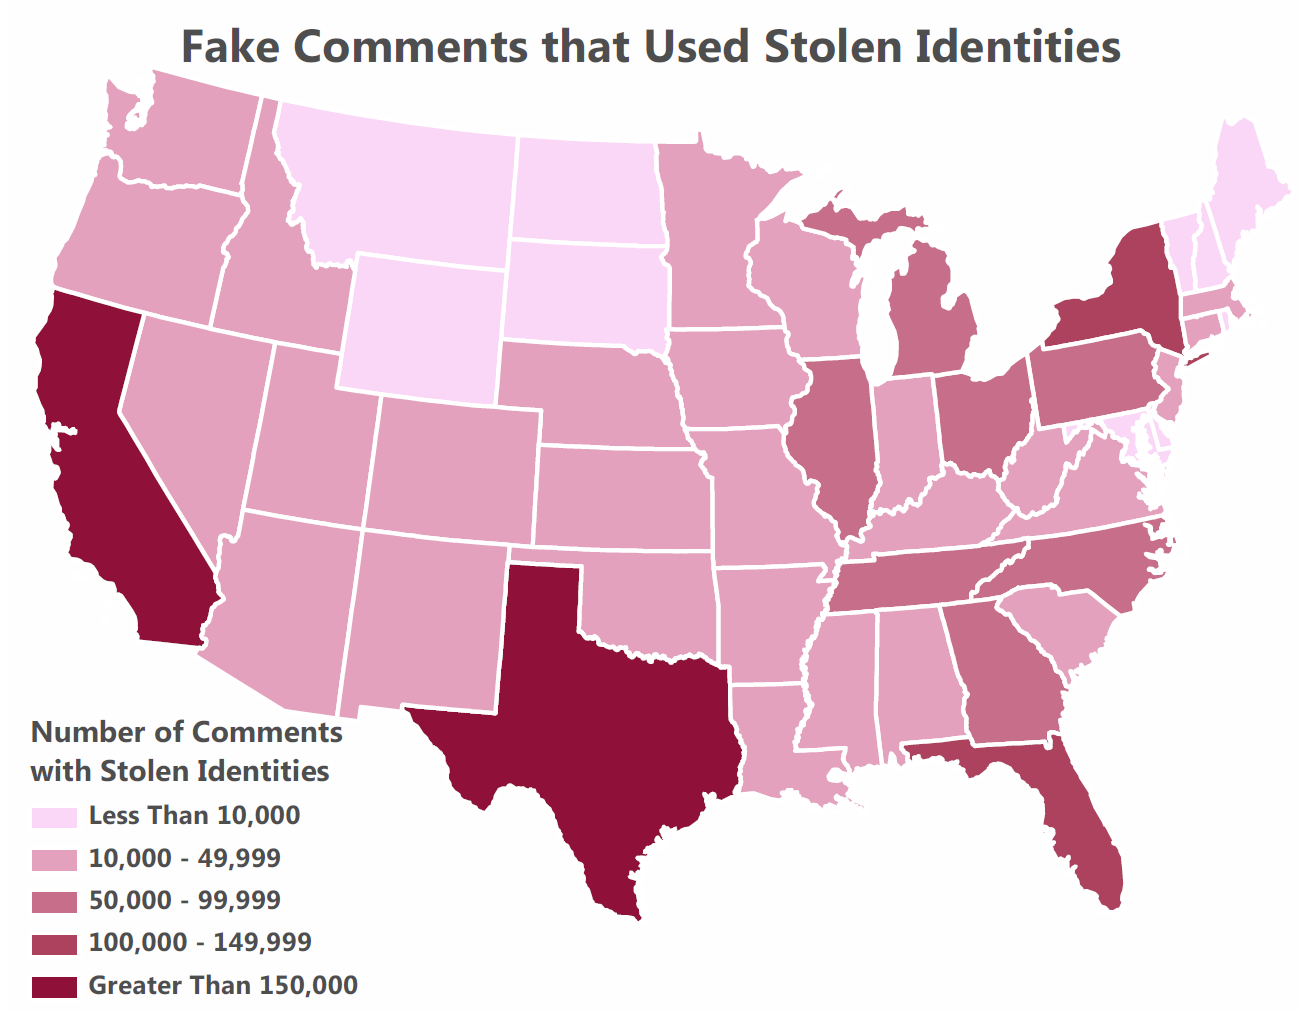 A map of the United States detailing the number ranges of comments with stolen identities by state.